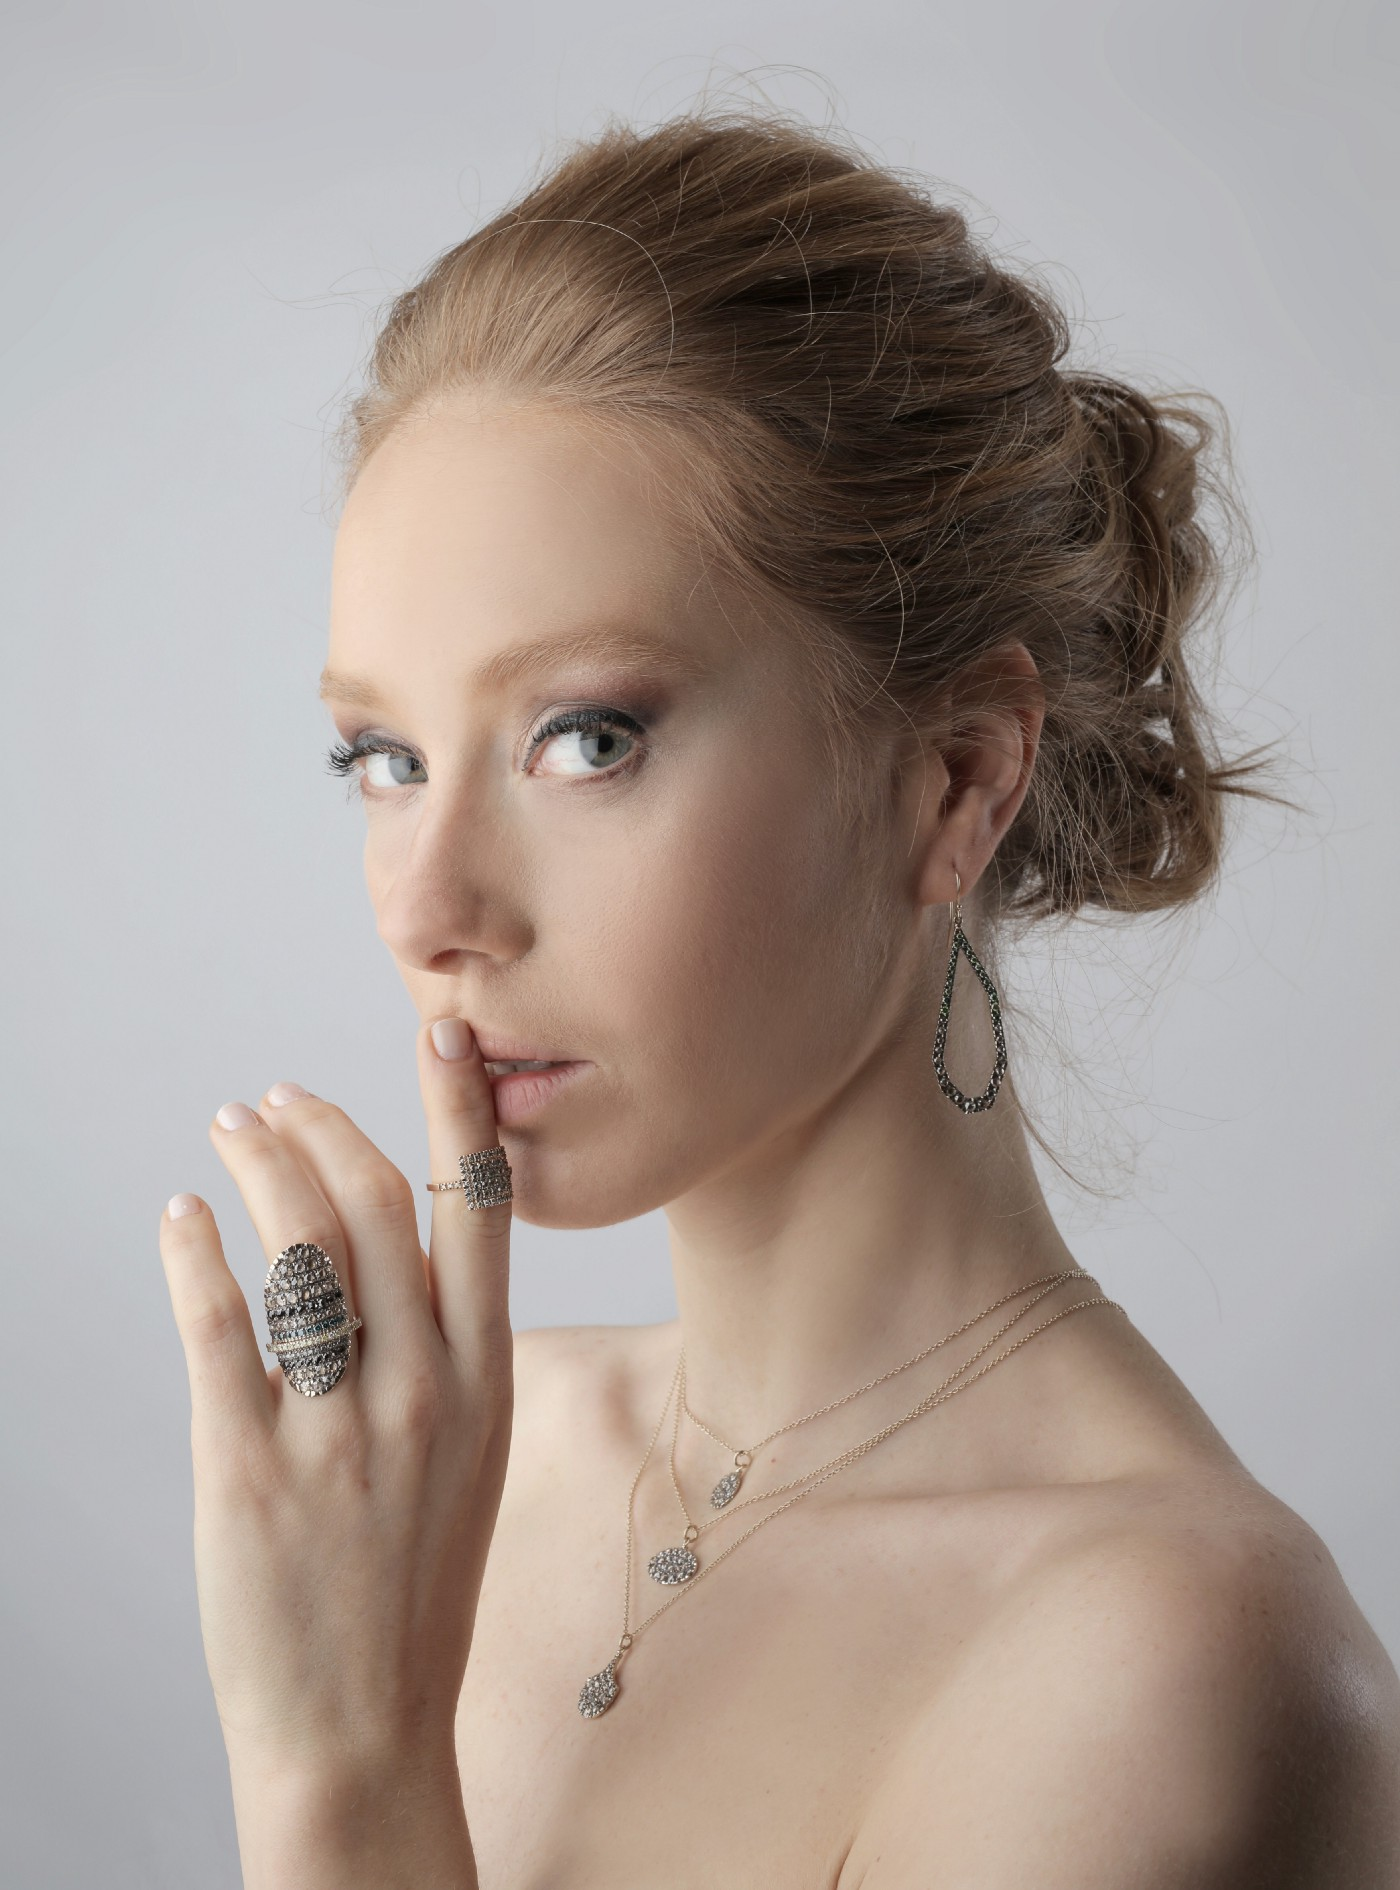 A woman suggestively holds a finger to her lips. Her hair is swept back in a messy bun. She wears rings and a necklace but the image suggests she is naked, though we only see above her breasts.